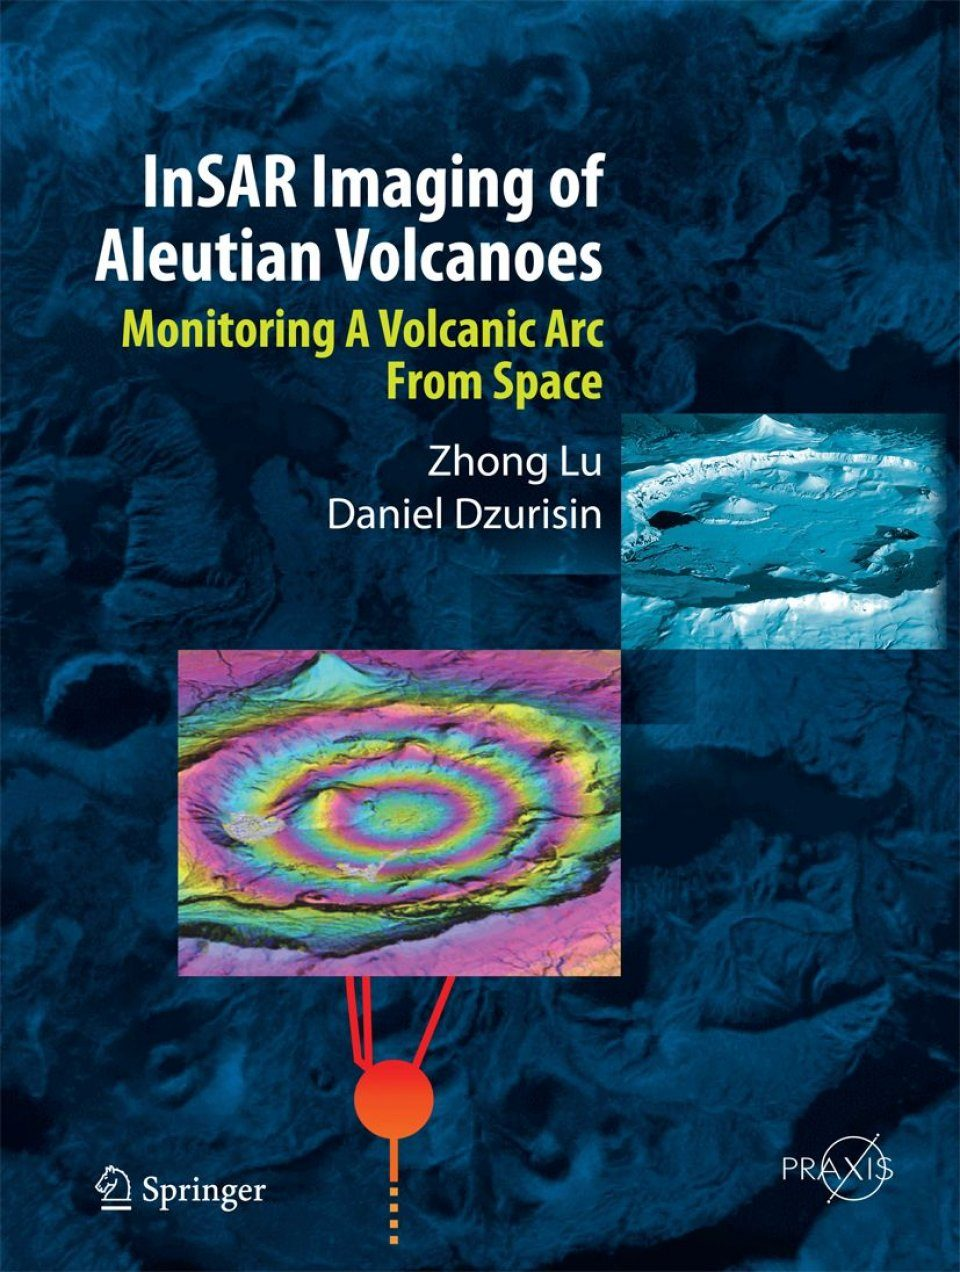 InSAR Imaging of Aleutian Volcanoes